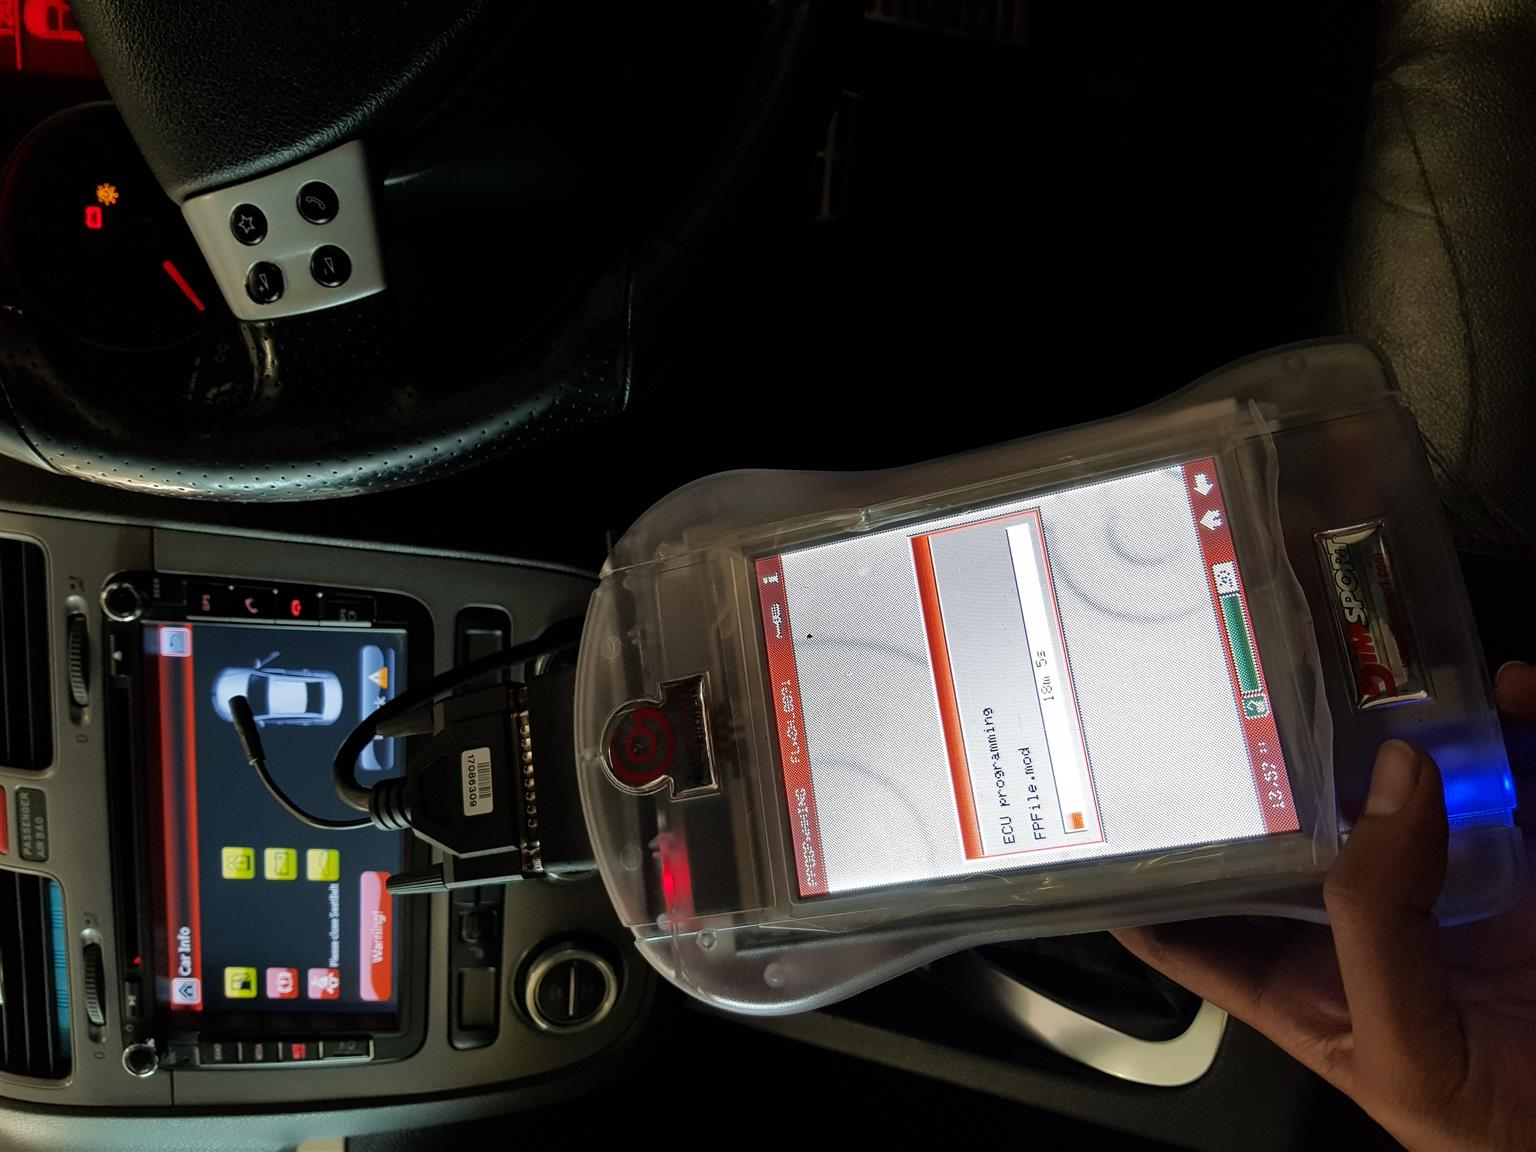 Ecu Remapping/Coding Services | Junk Mail